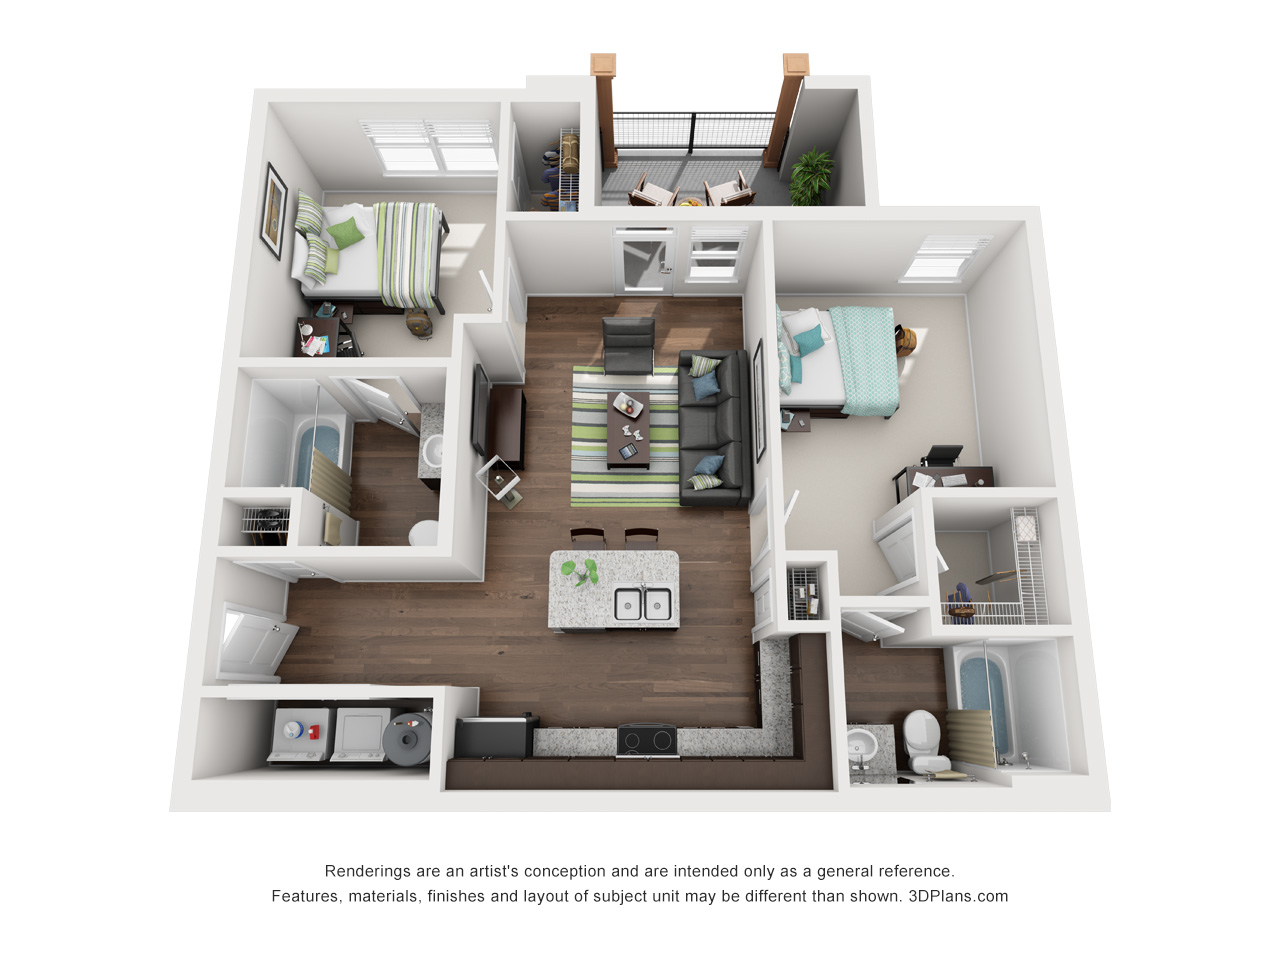 stadium enclave floor plans - 4 Bedroom Apartments